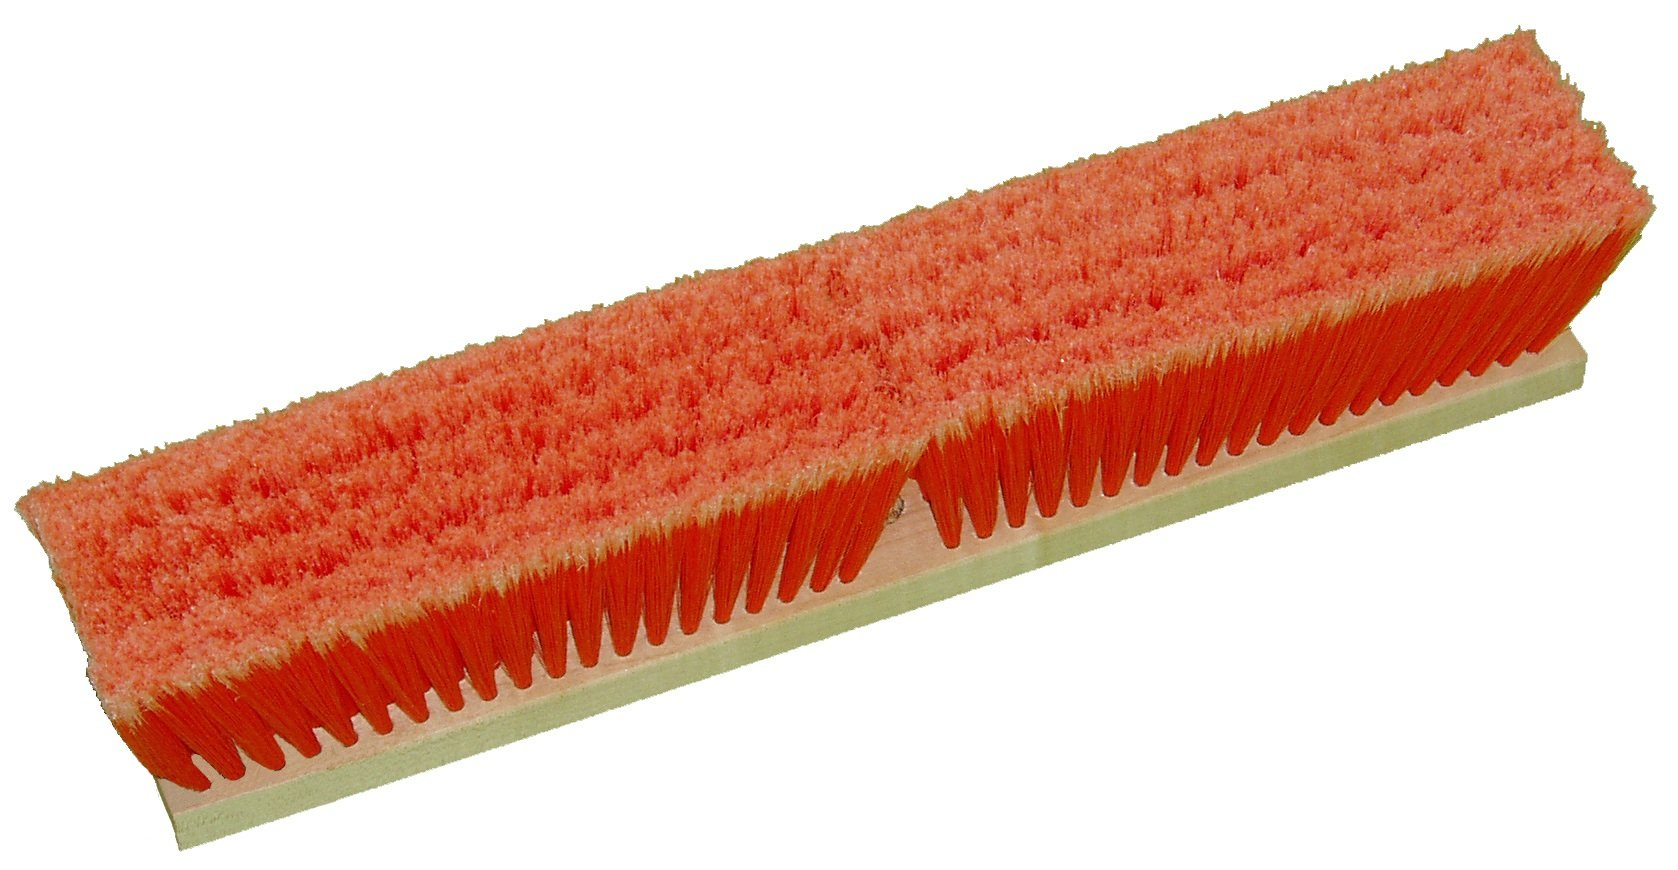 Zephyr 39136 Styrene Soft Tip Polypropylene Push Broom, 36'' Head Width, Orange (Case of 12)